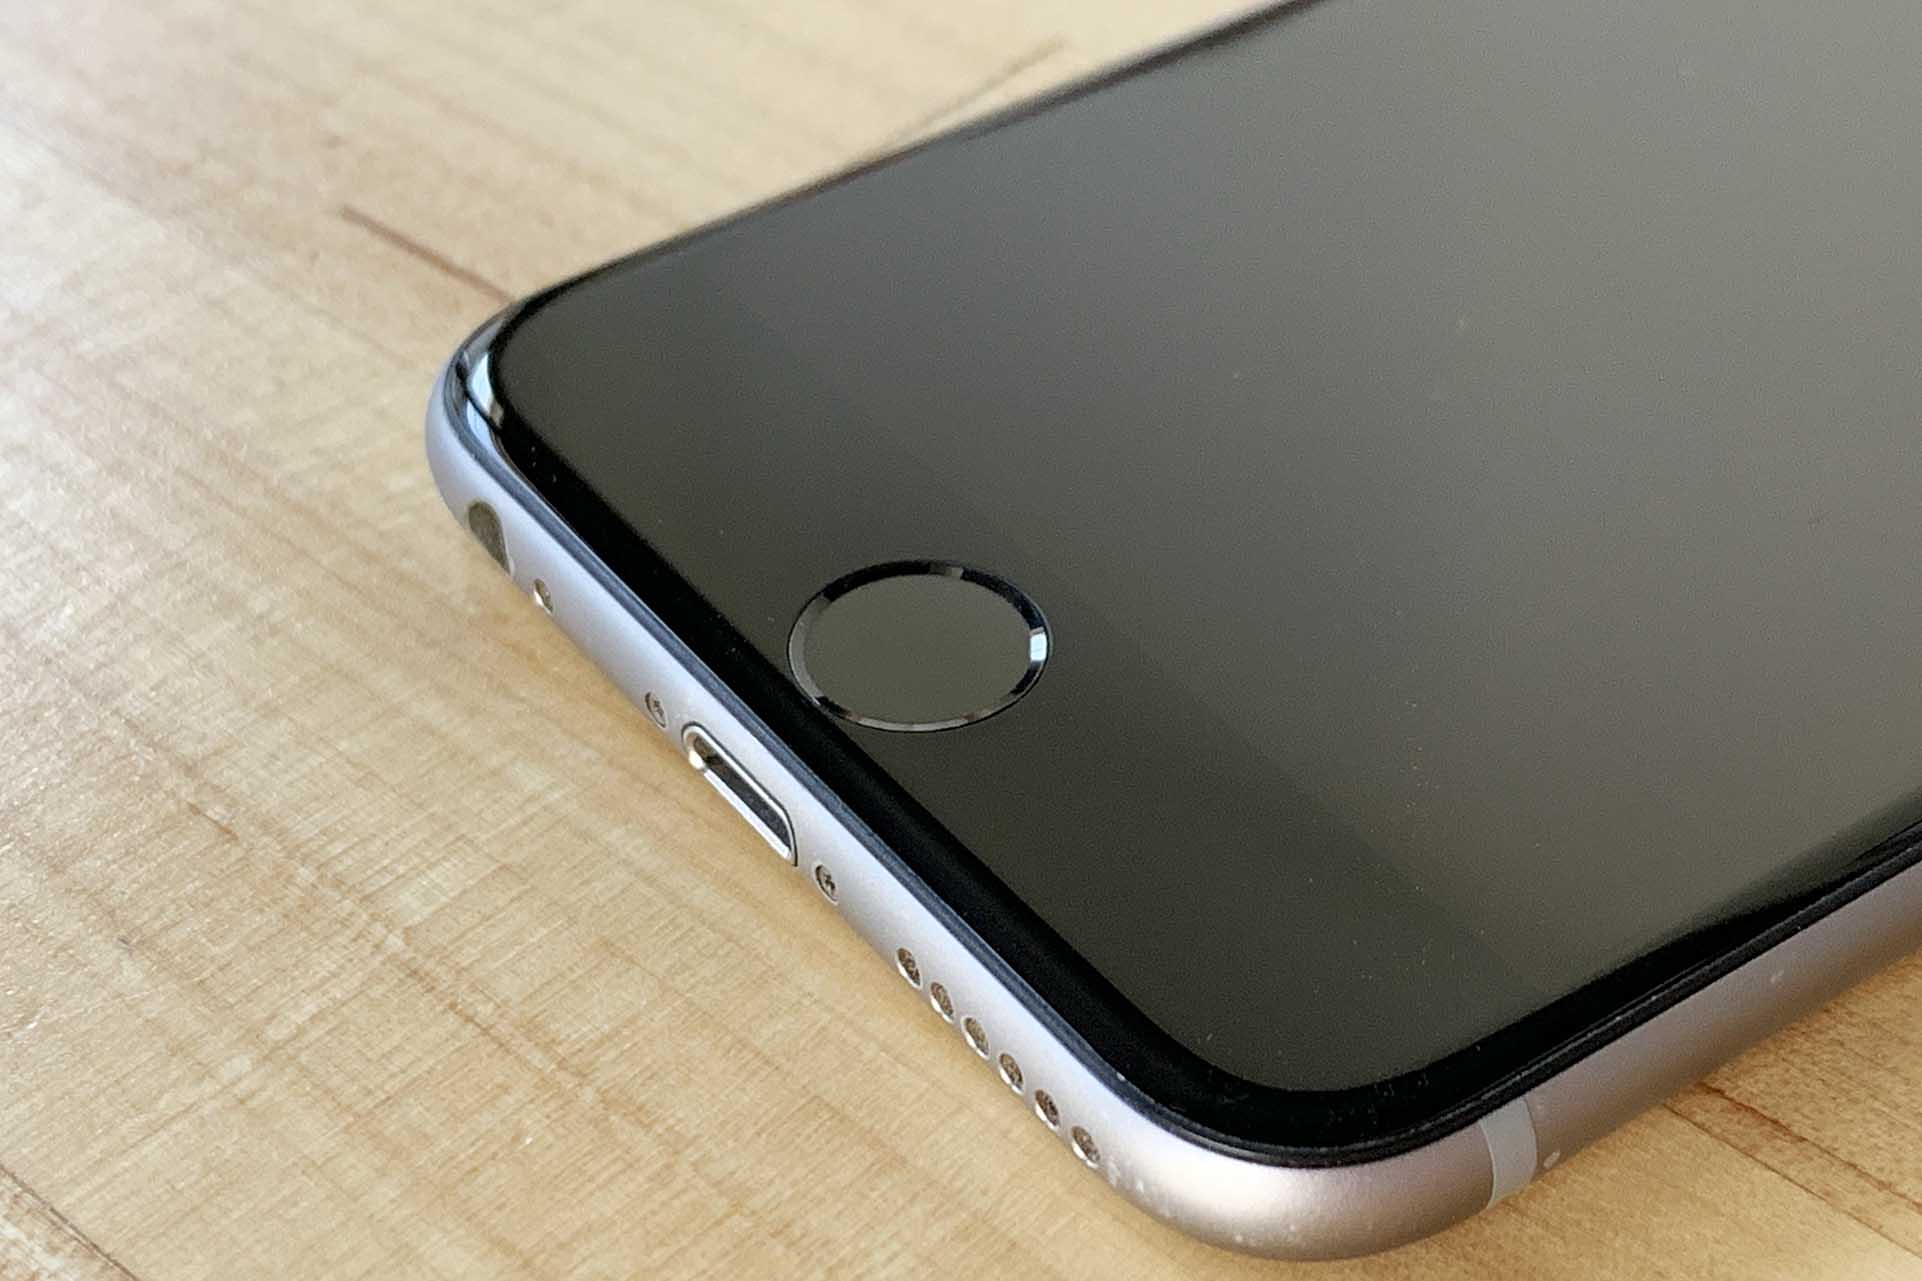 The home button on an iPhone 6.